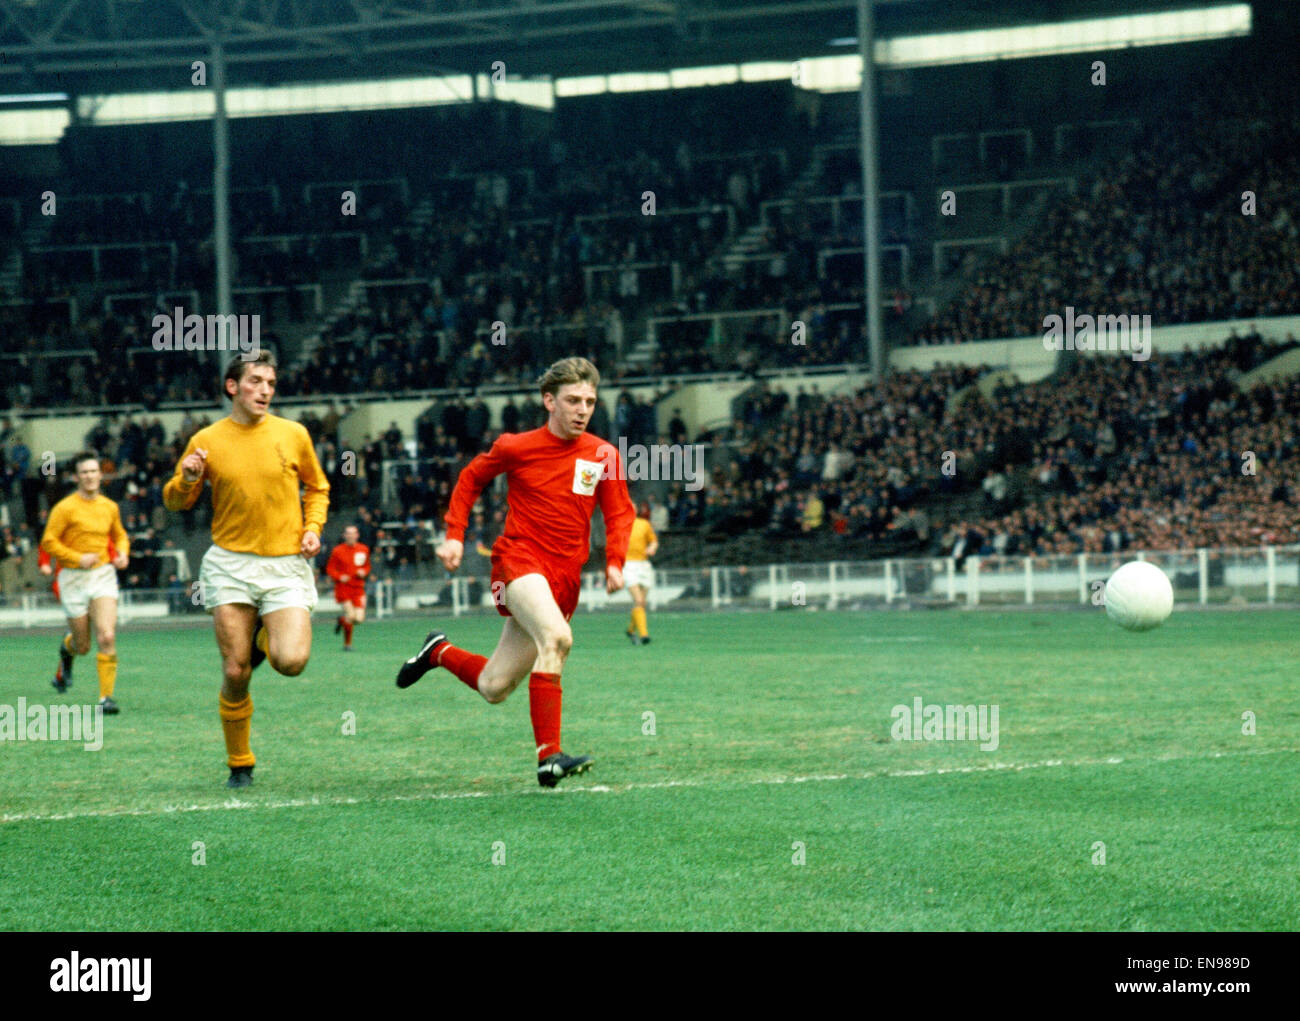 Amateur Cup Final. North Shields v. Sutton United. Rutherford of North Shields and Dario Gradi of Sutton. 12th AprilStock Photo